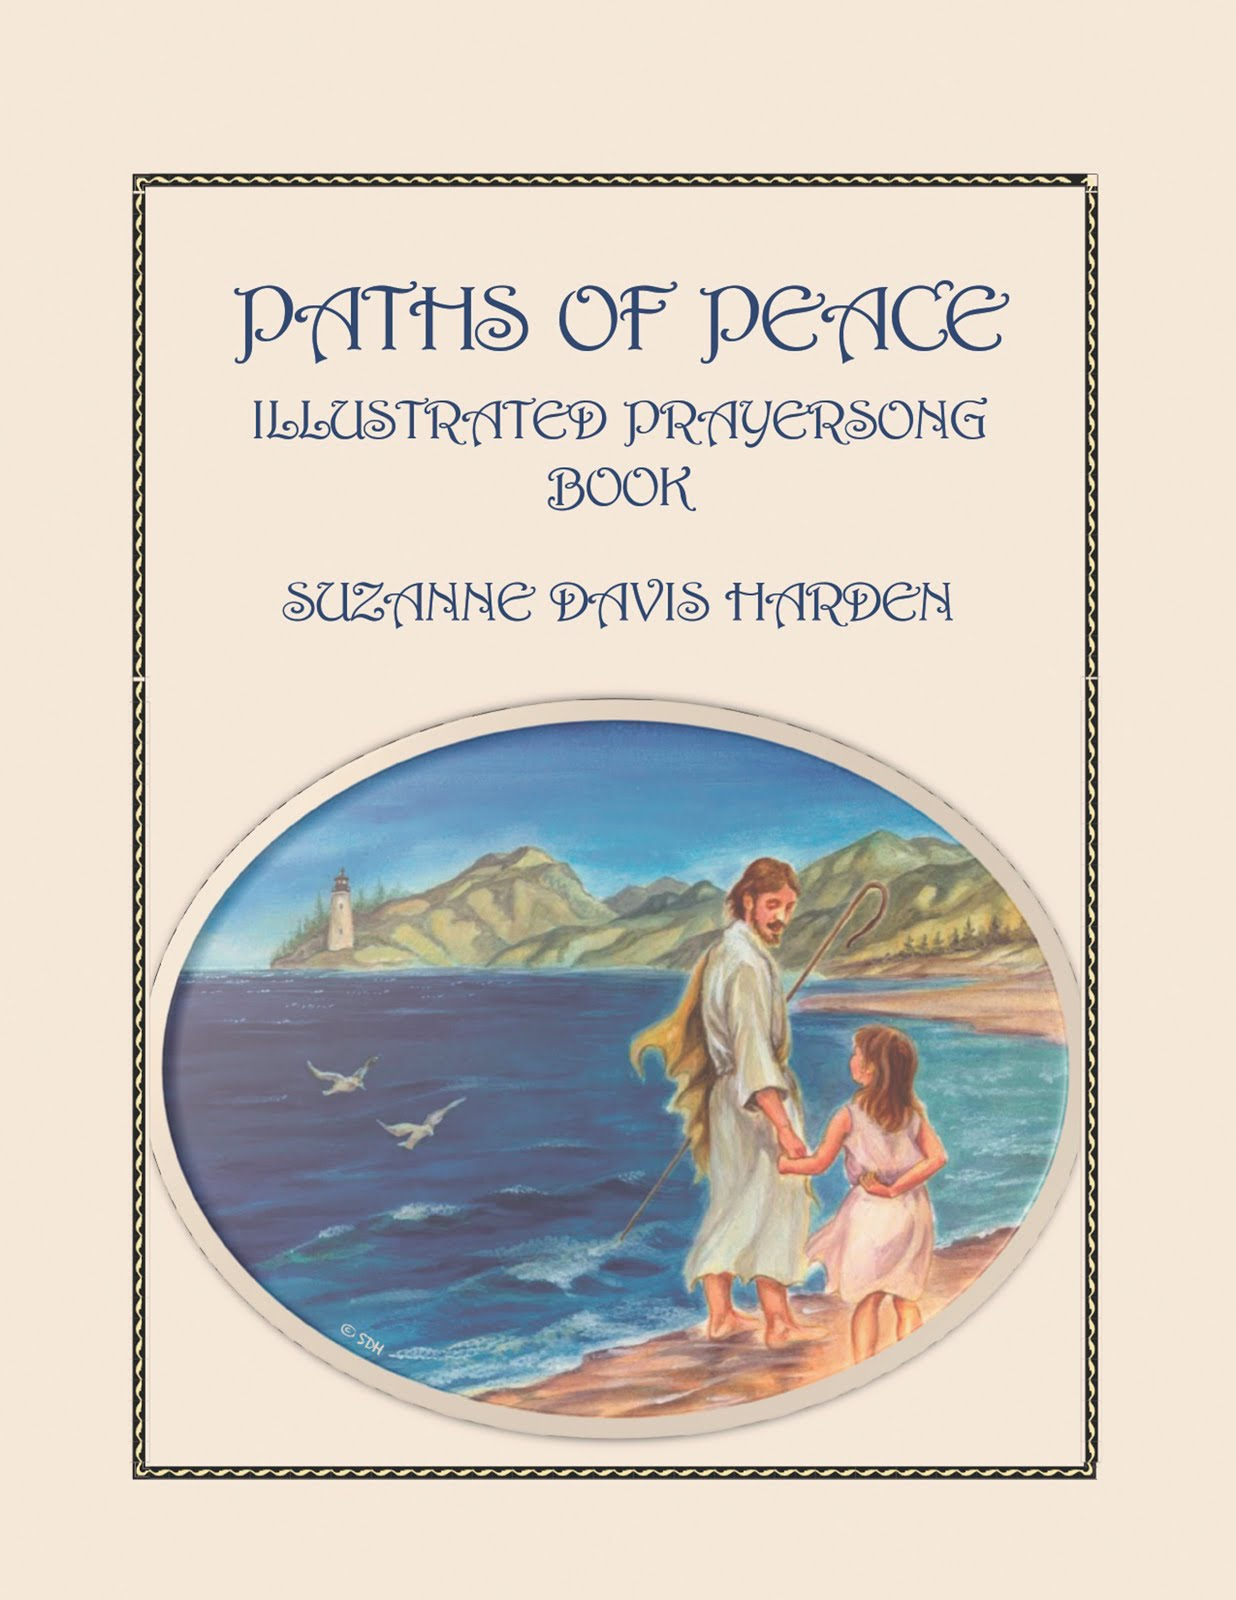 """Paths of Peace"""